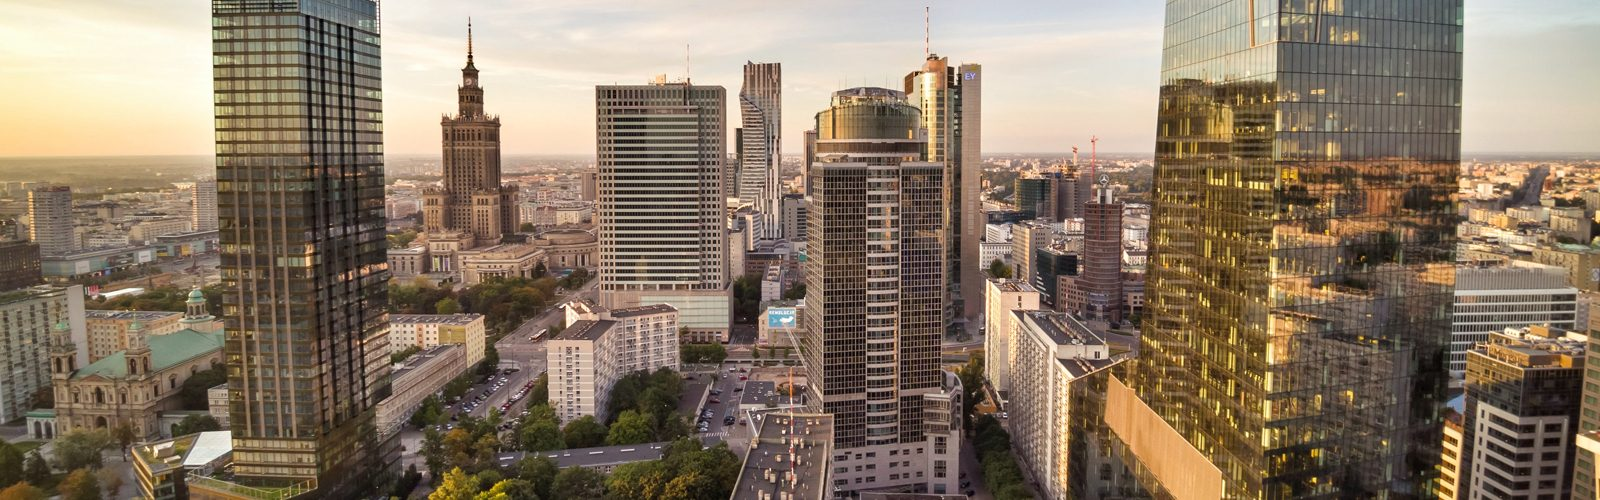 warsaw_lc